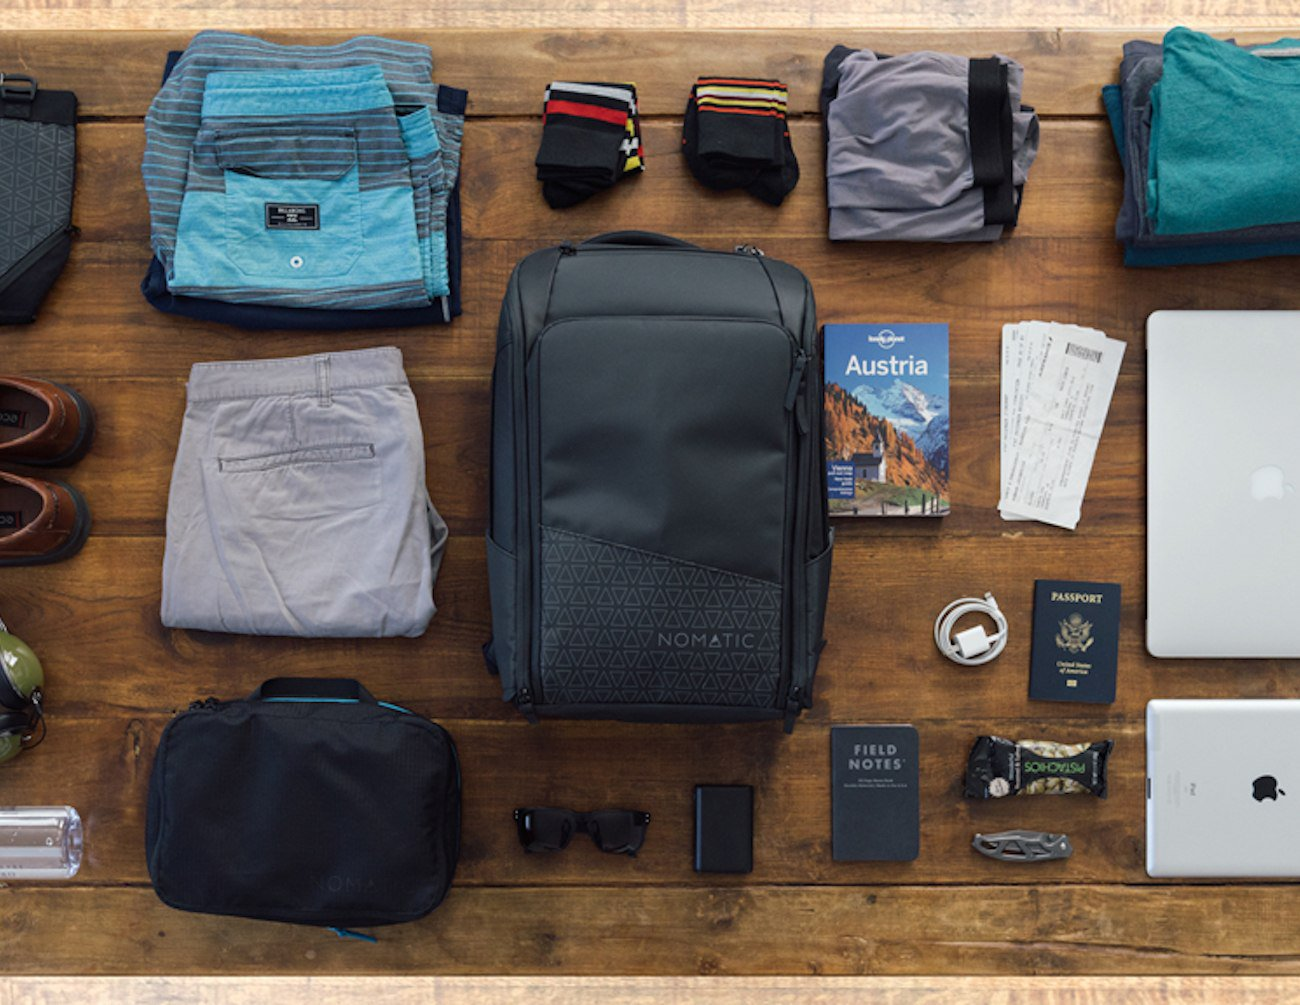 17 travel gadgets to make your vacation better than ever